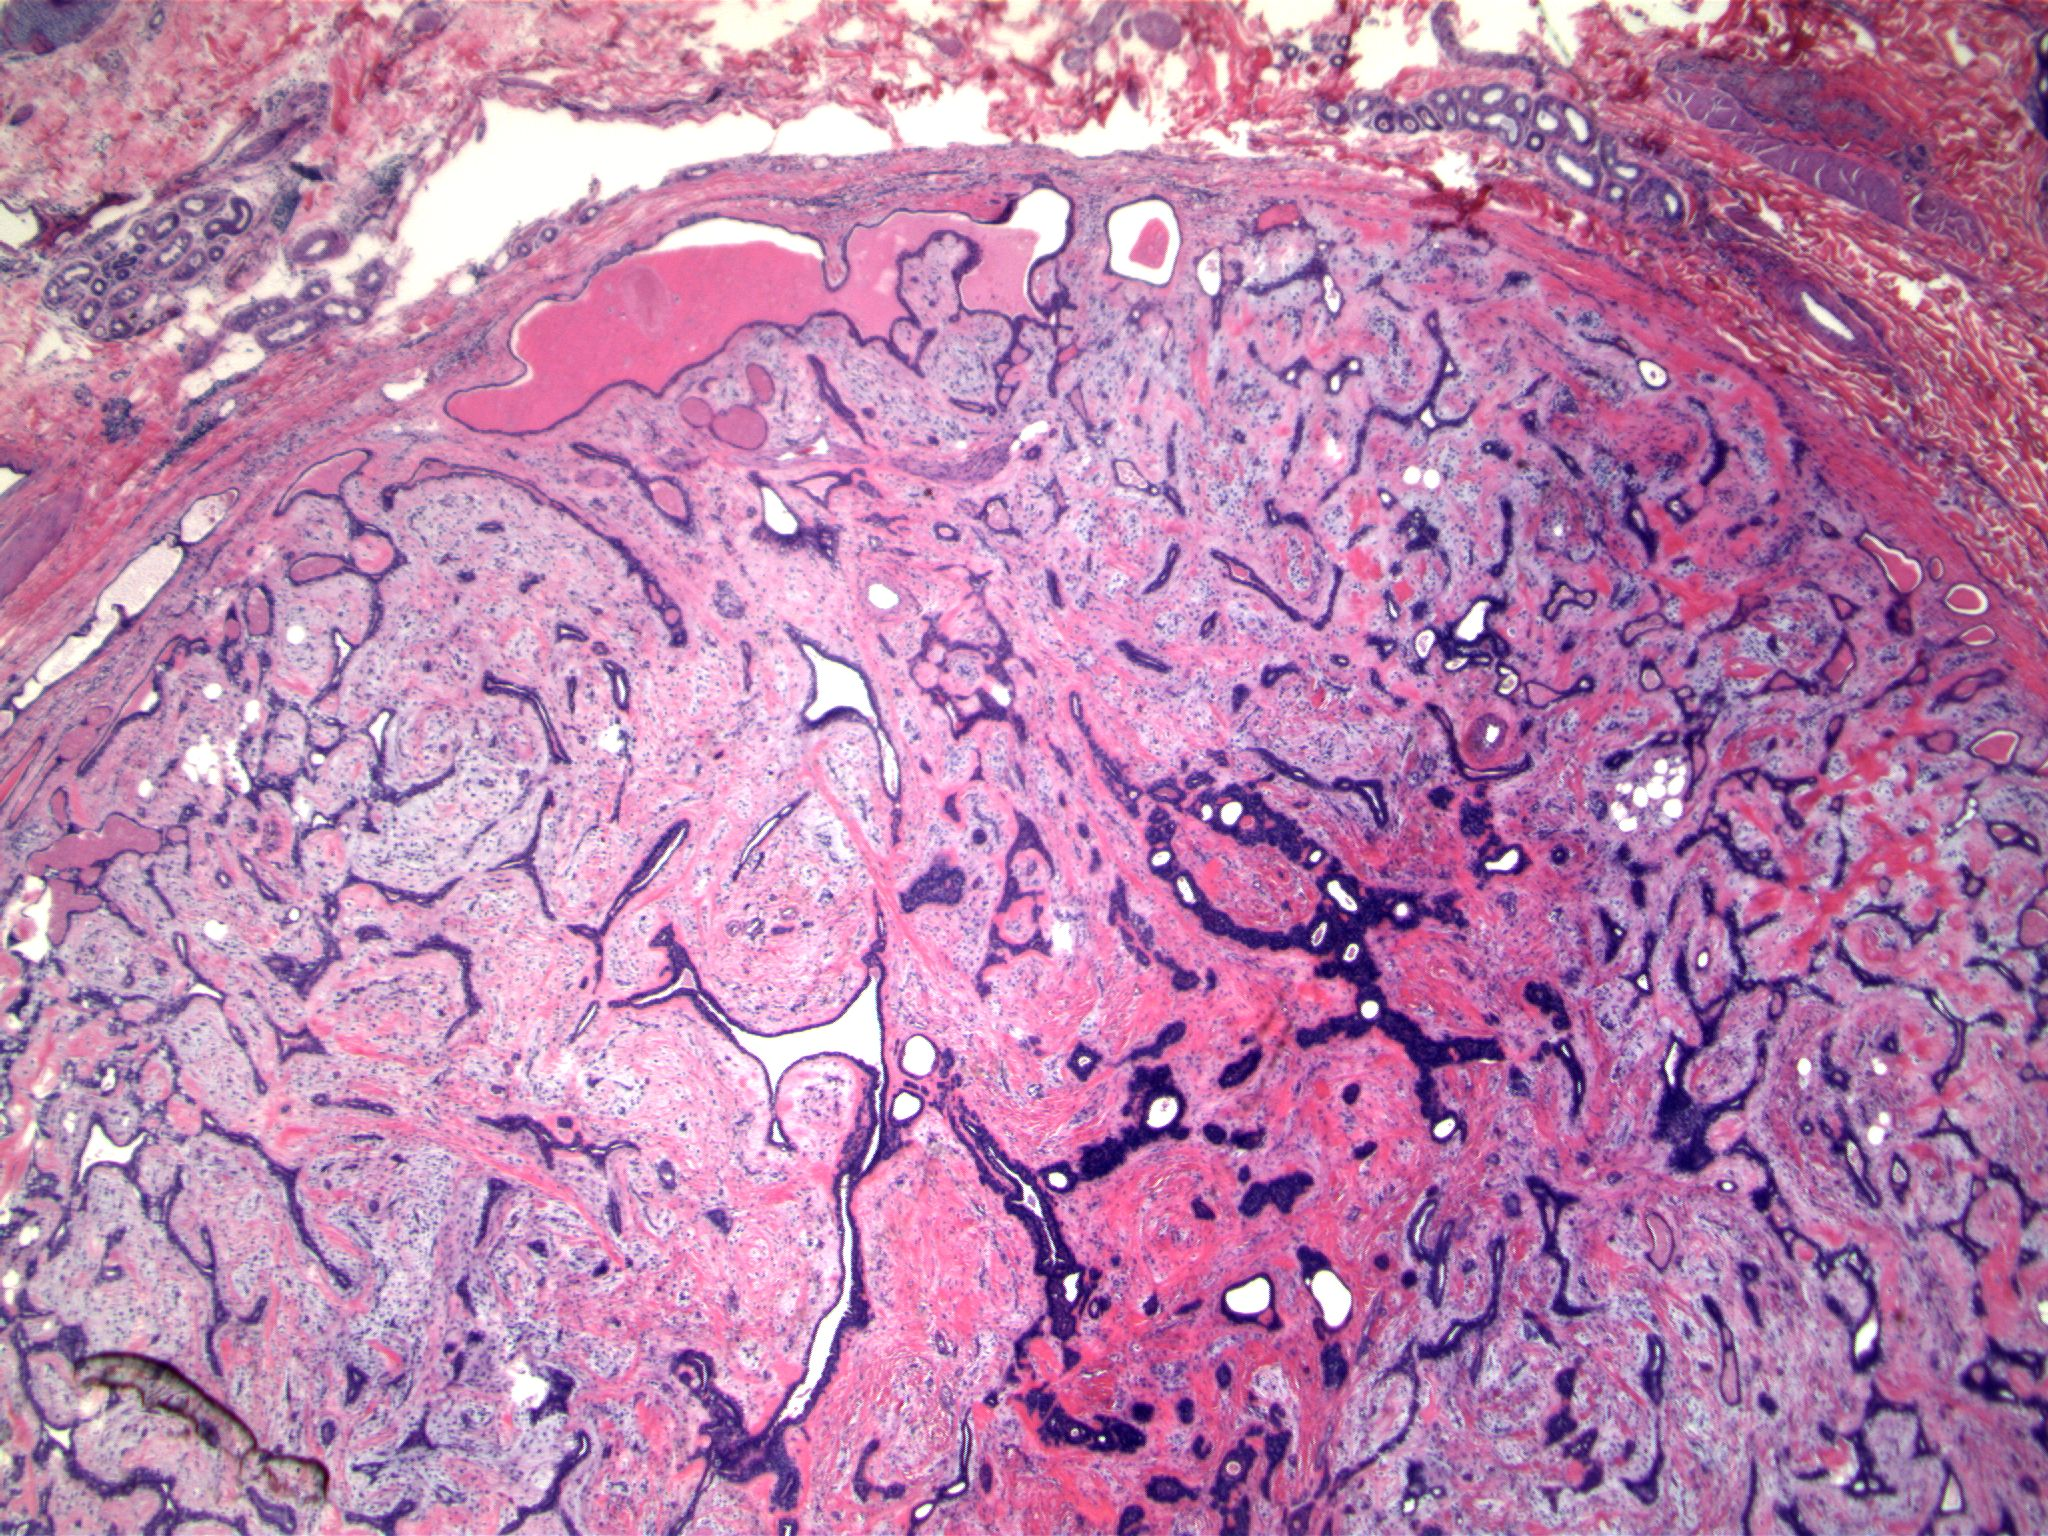 Image 4:  Two groups of eccrine units at the top of the figure show this lesion to be present in the deep dermis/subcutaneous tissue and not breast proper.